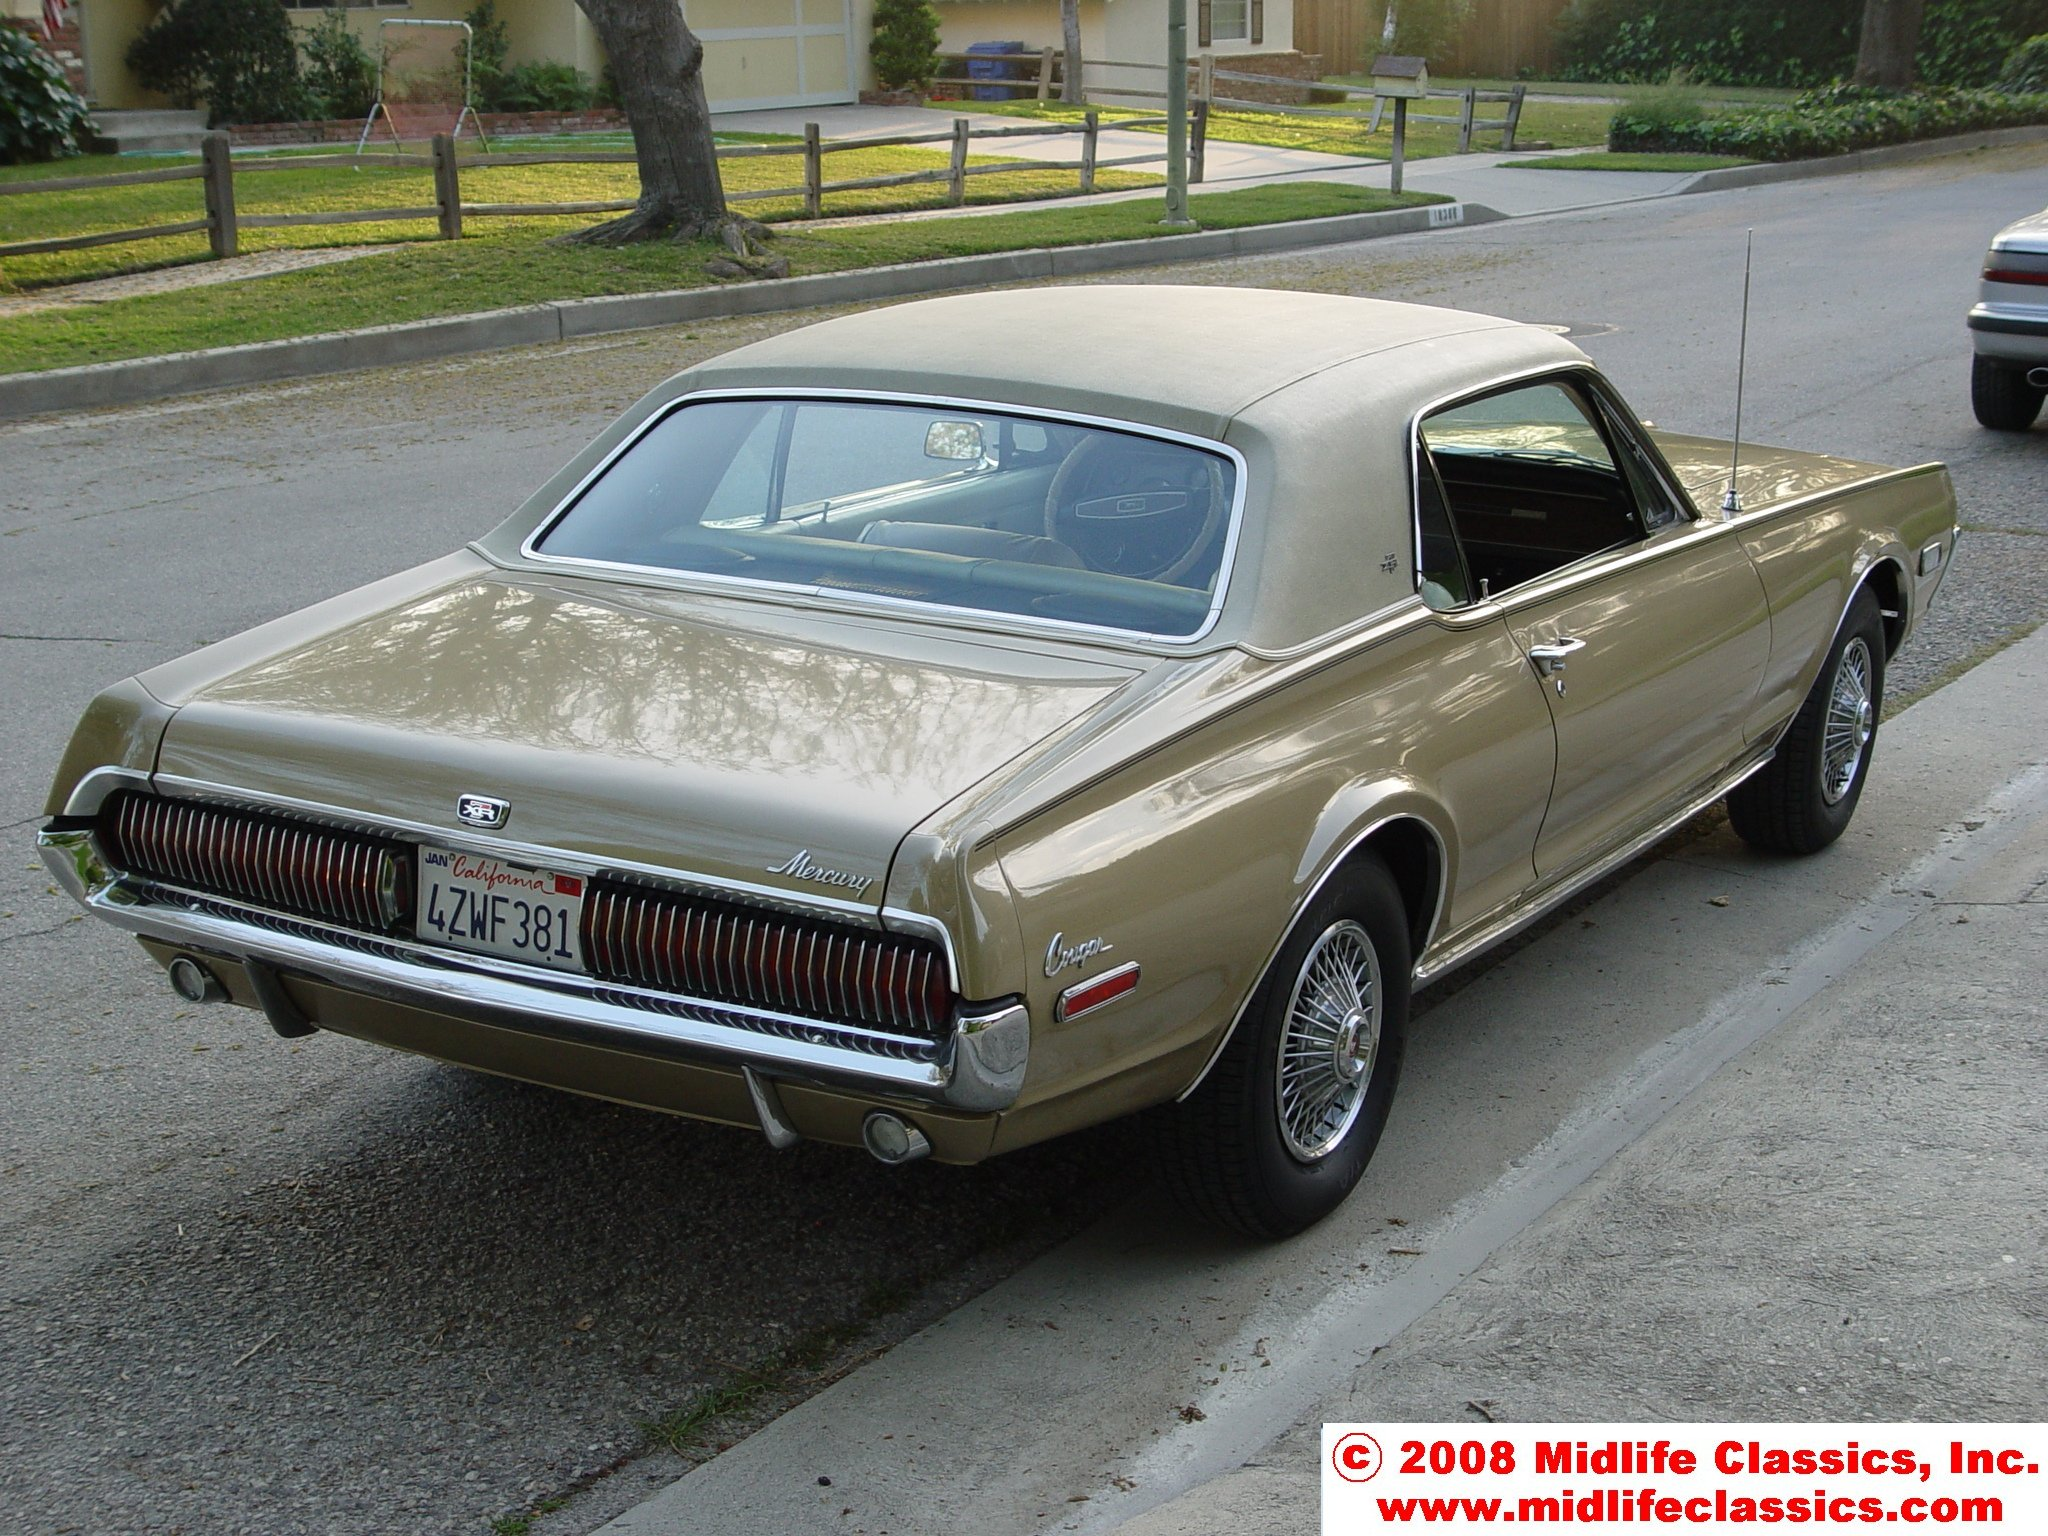 1968 Mercury Cougar XR-7